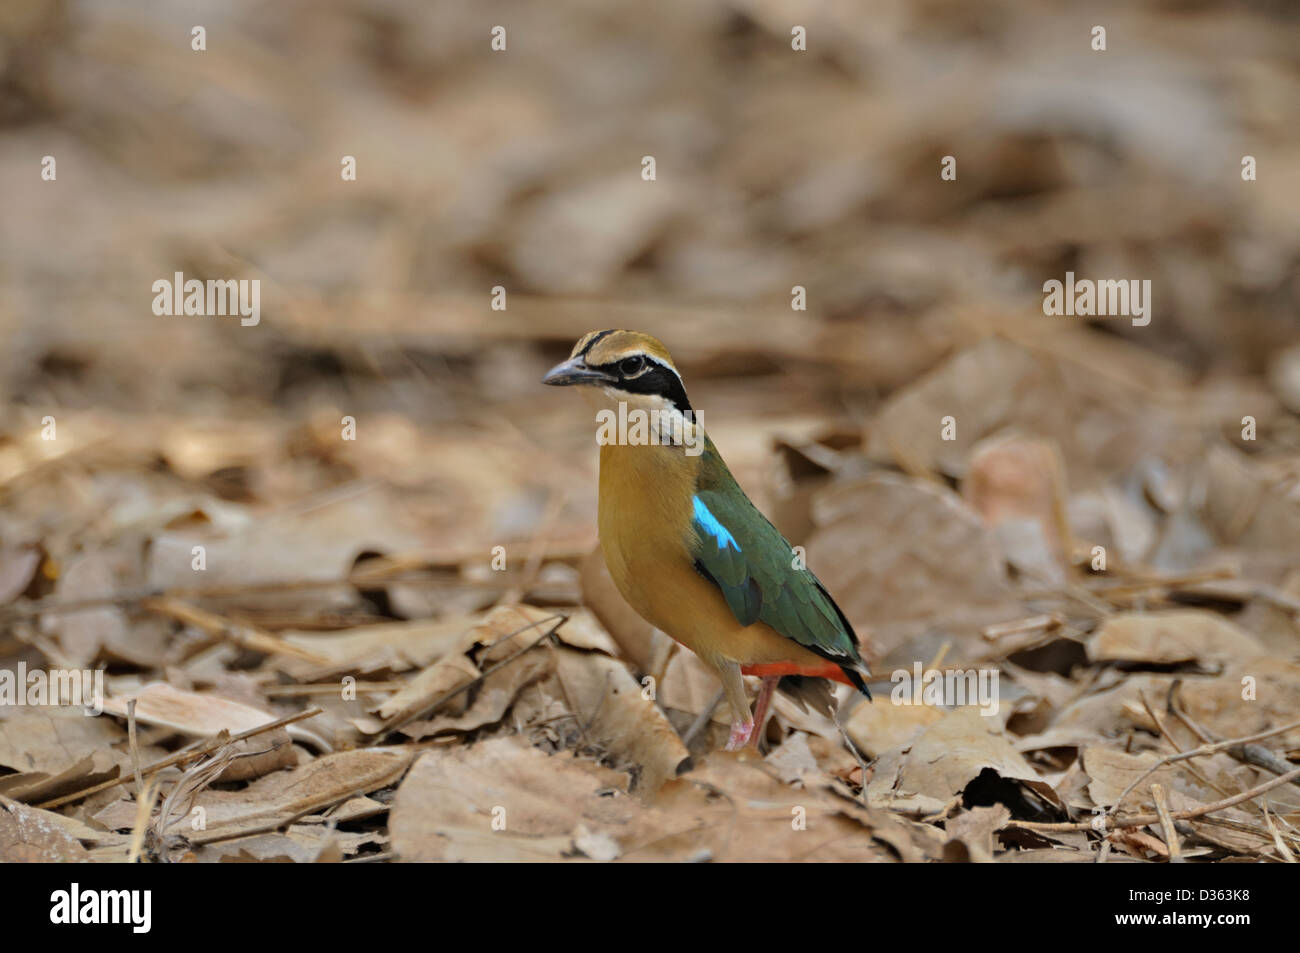 Indian Pitta (Pitta brachyura) in Ranthambore national park, India - Stock Image